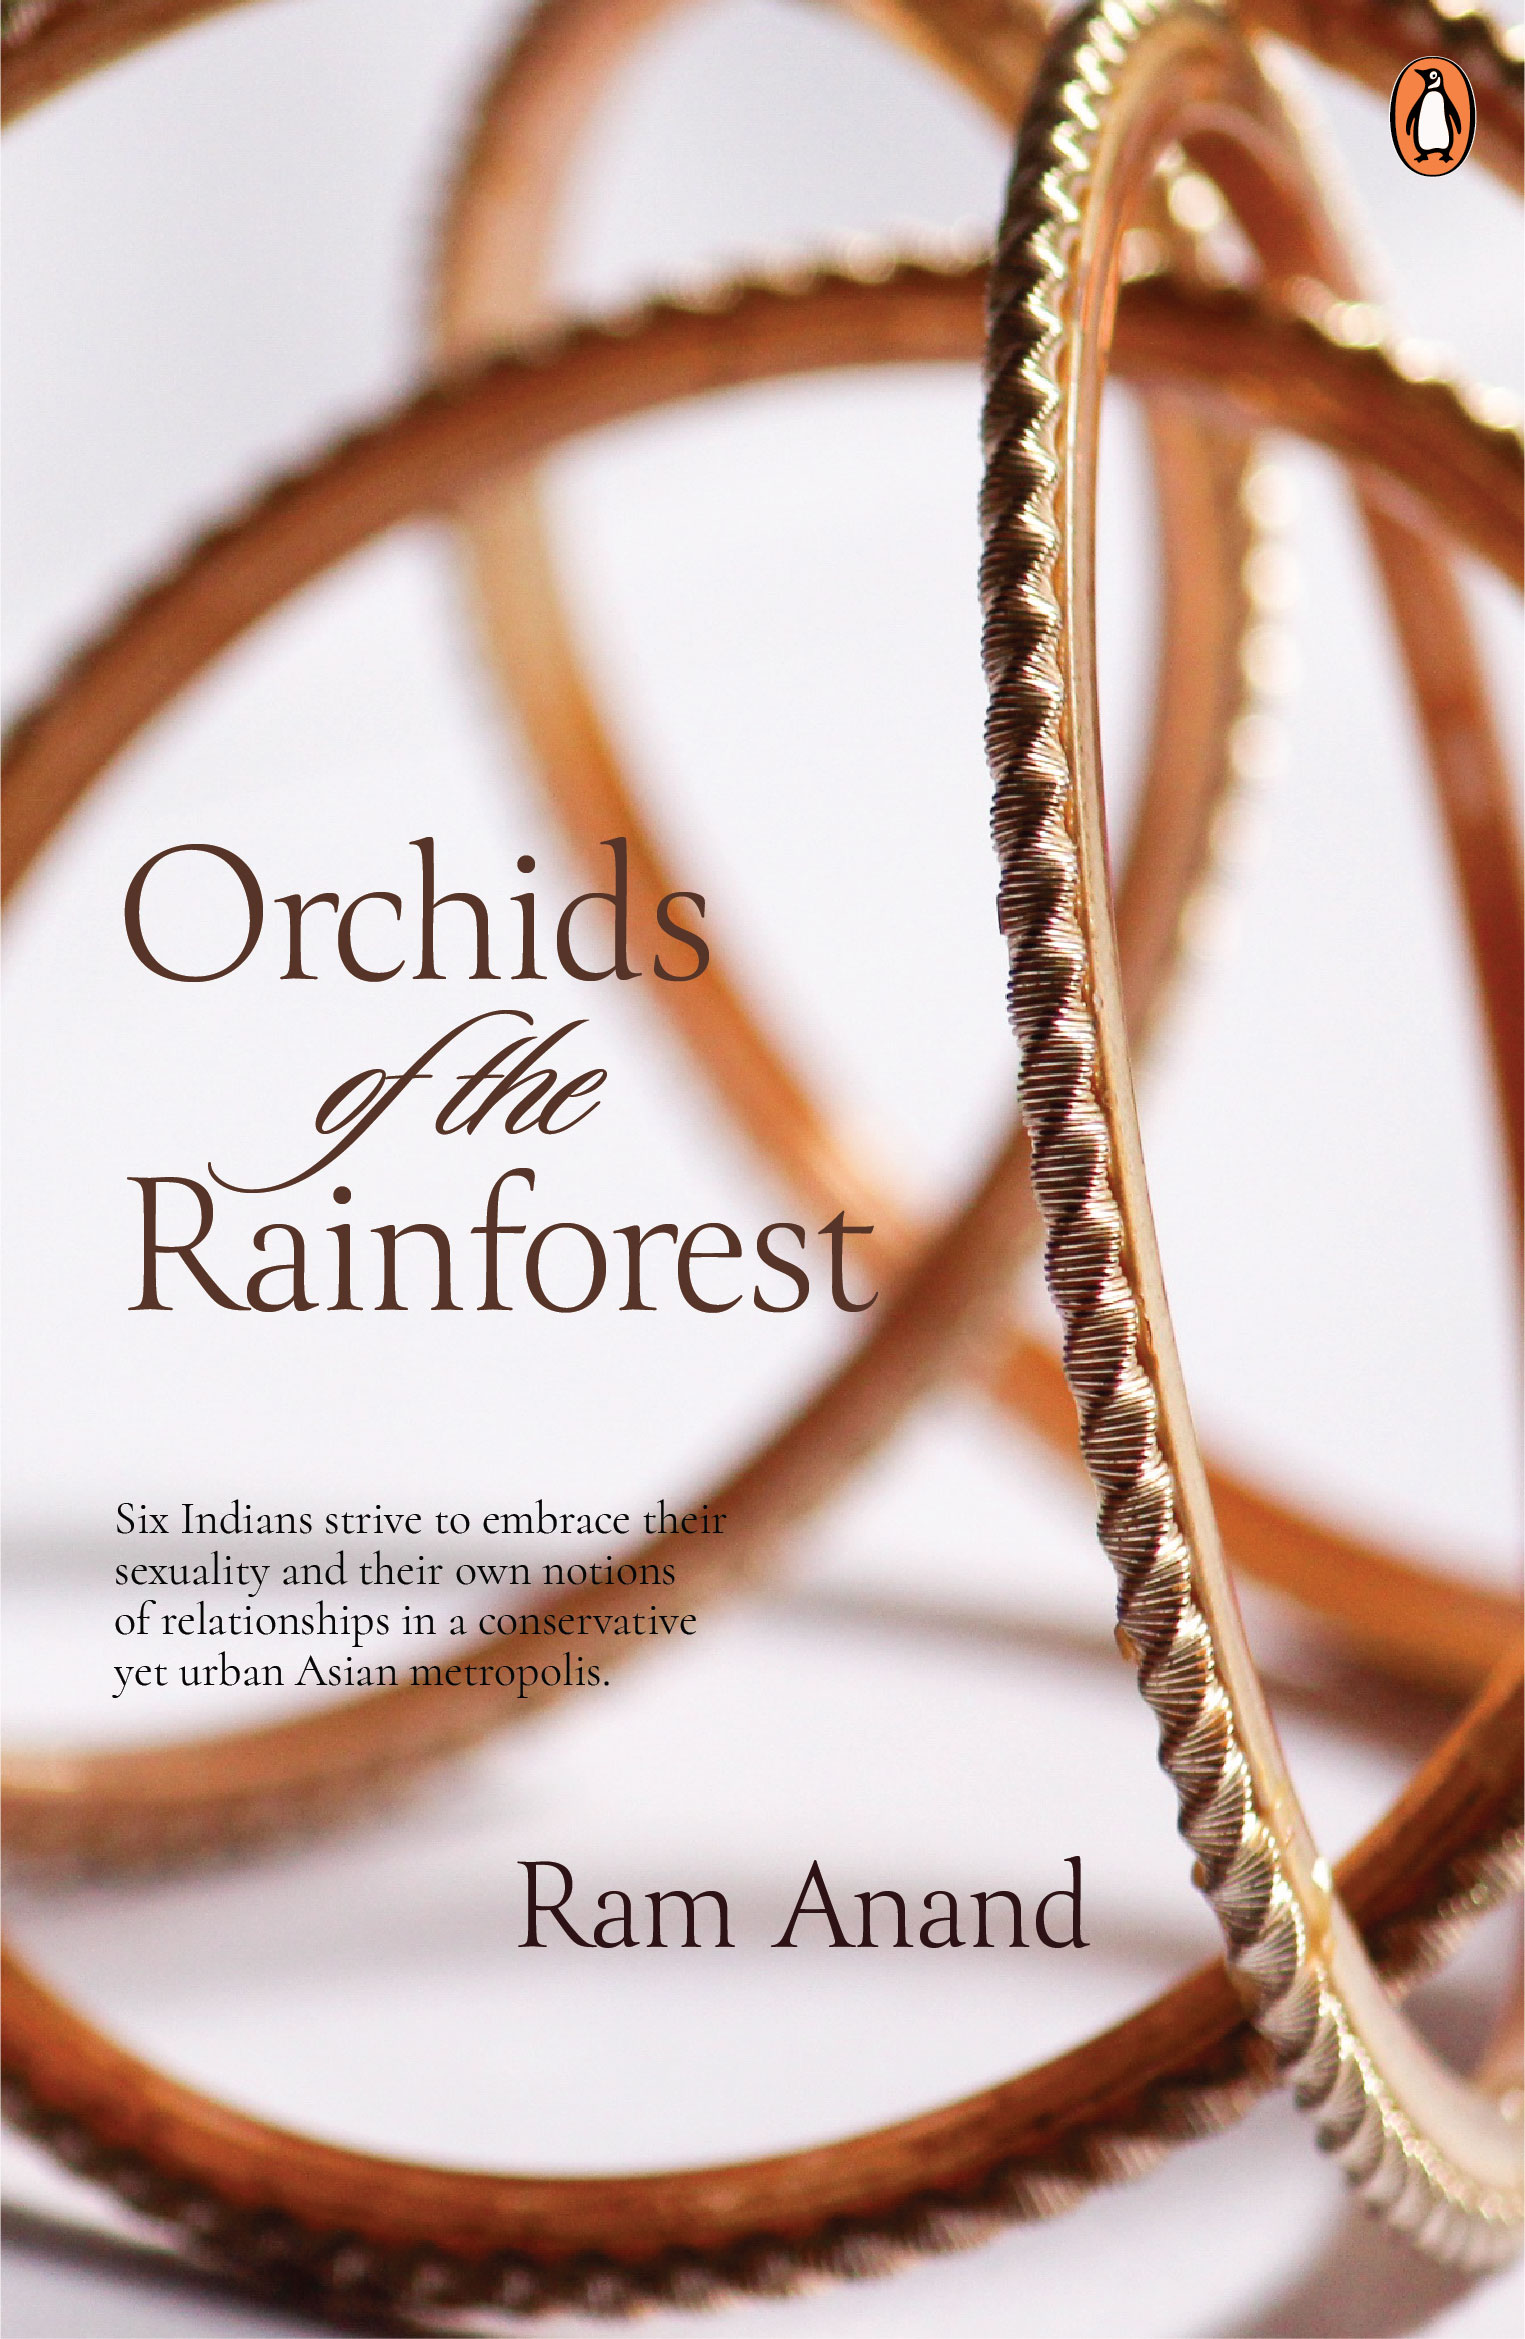 Orchids of the Rainforest